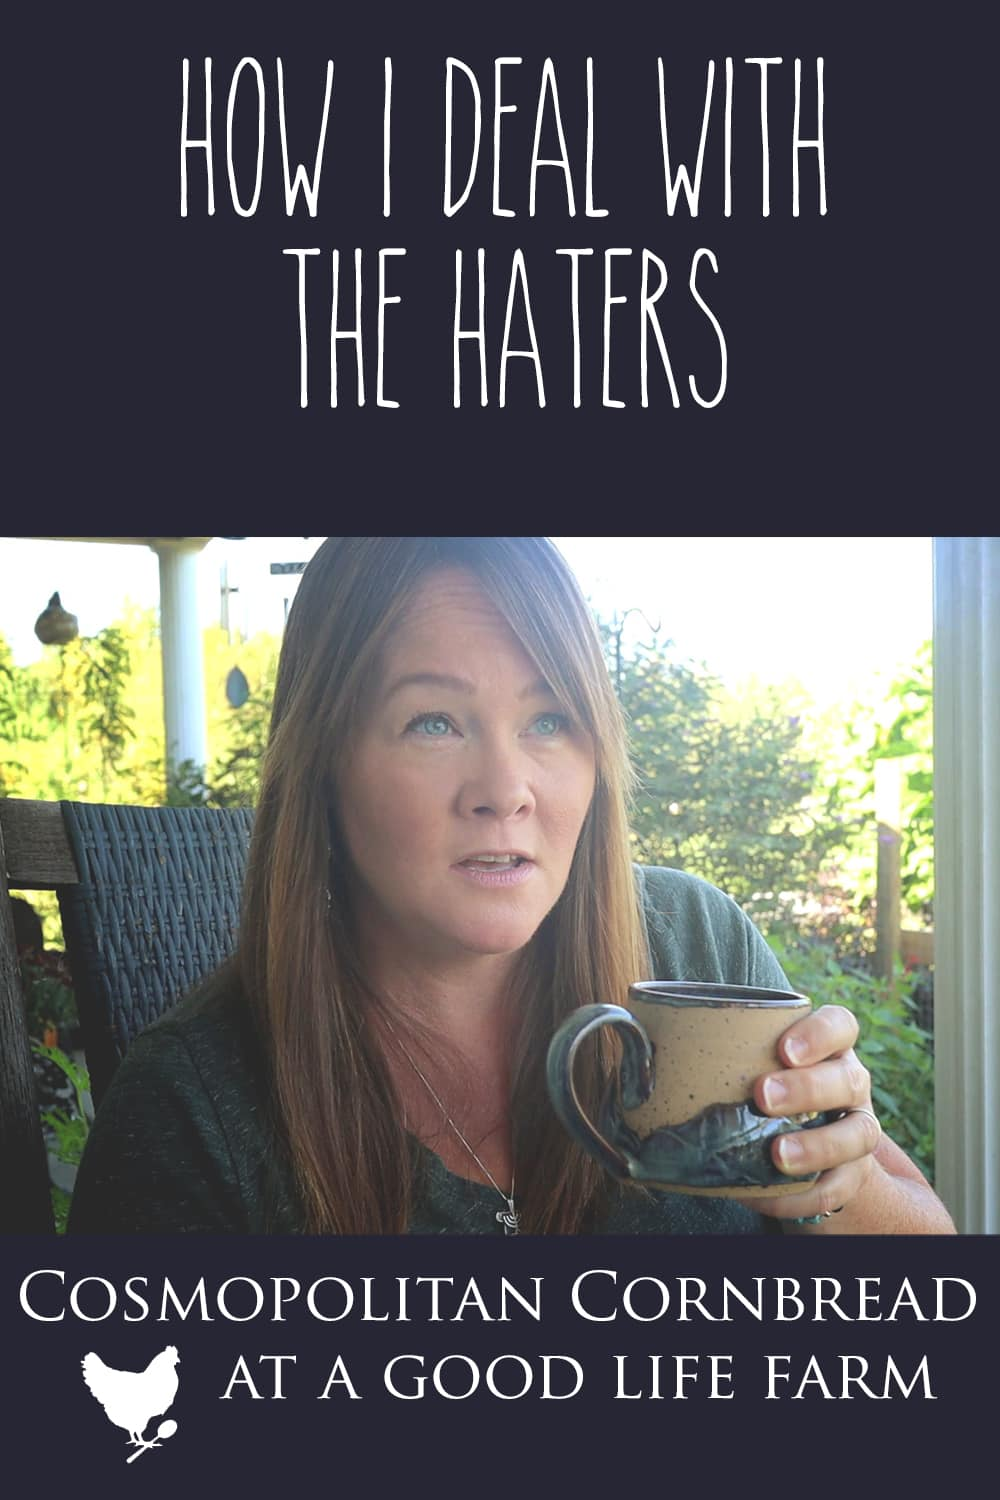 "When you have an online presence, whether it is as a blogger, Youtuber, or simply your social media account - there are times when we all have to deal with negative comments and ugliness. A ""real world"" incident happened, and it prompted me to talk about this topic."